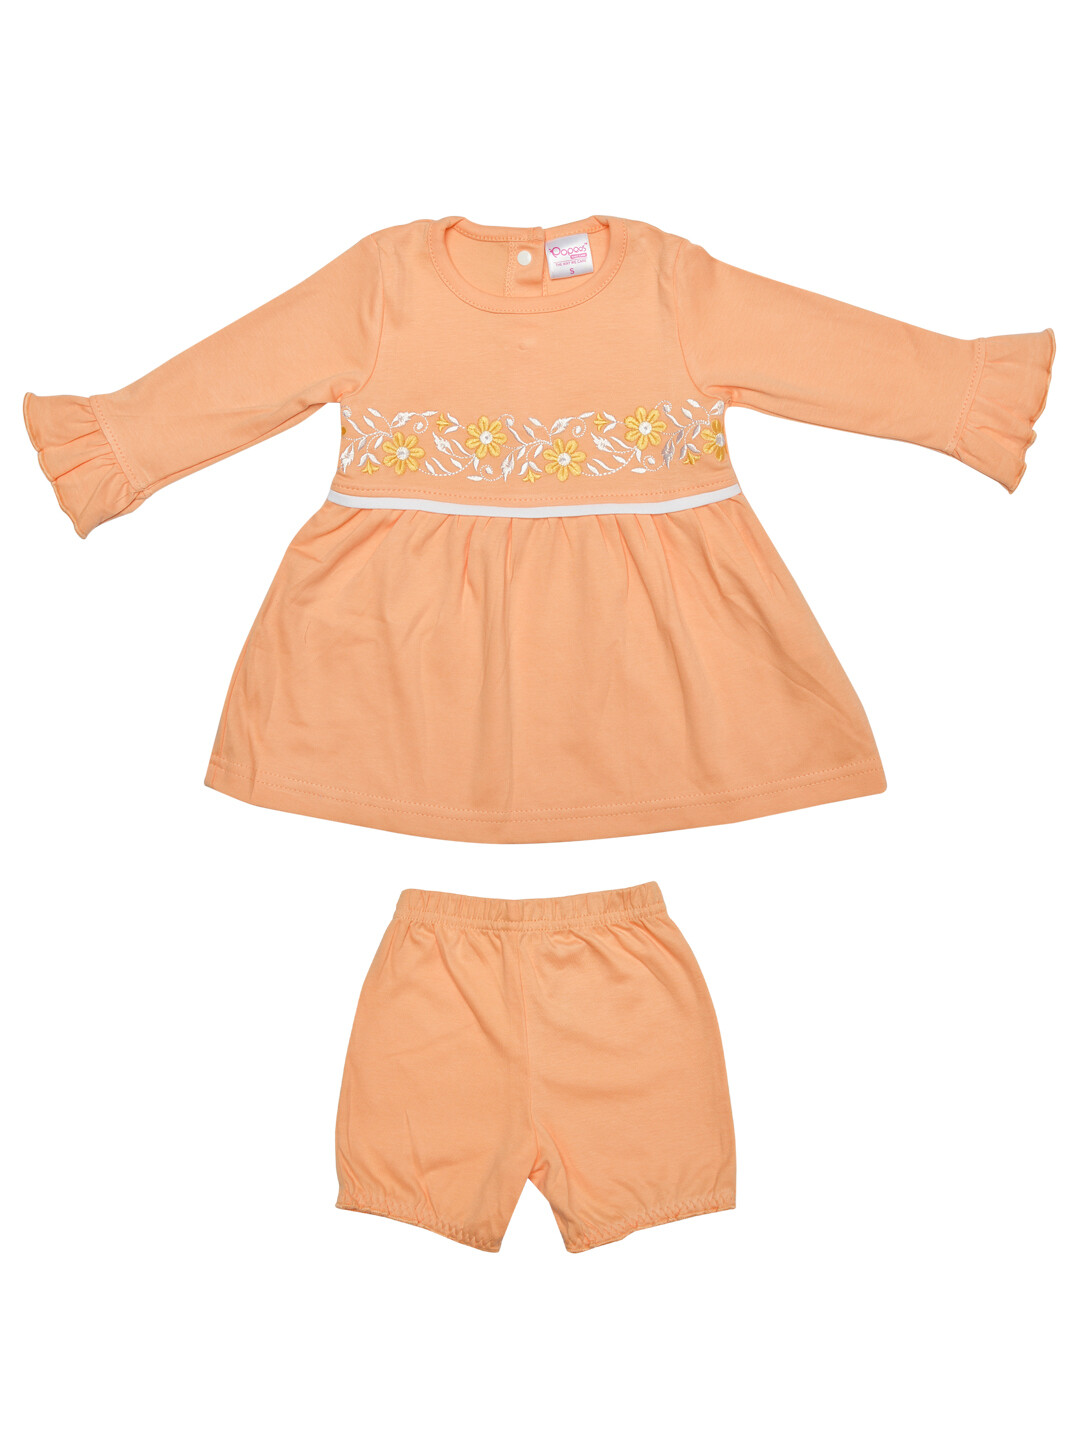 Lorena Apricot Ice Full Sleeves Flower Embroidered Top with Shorts